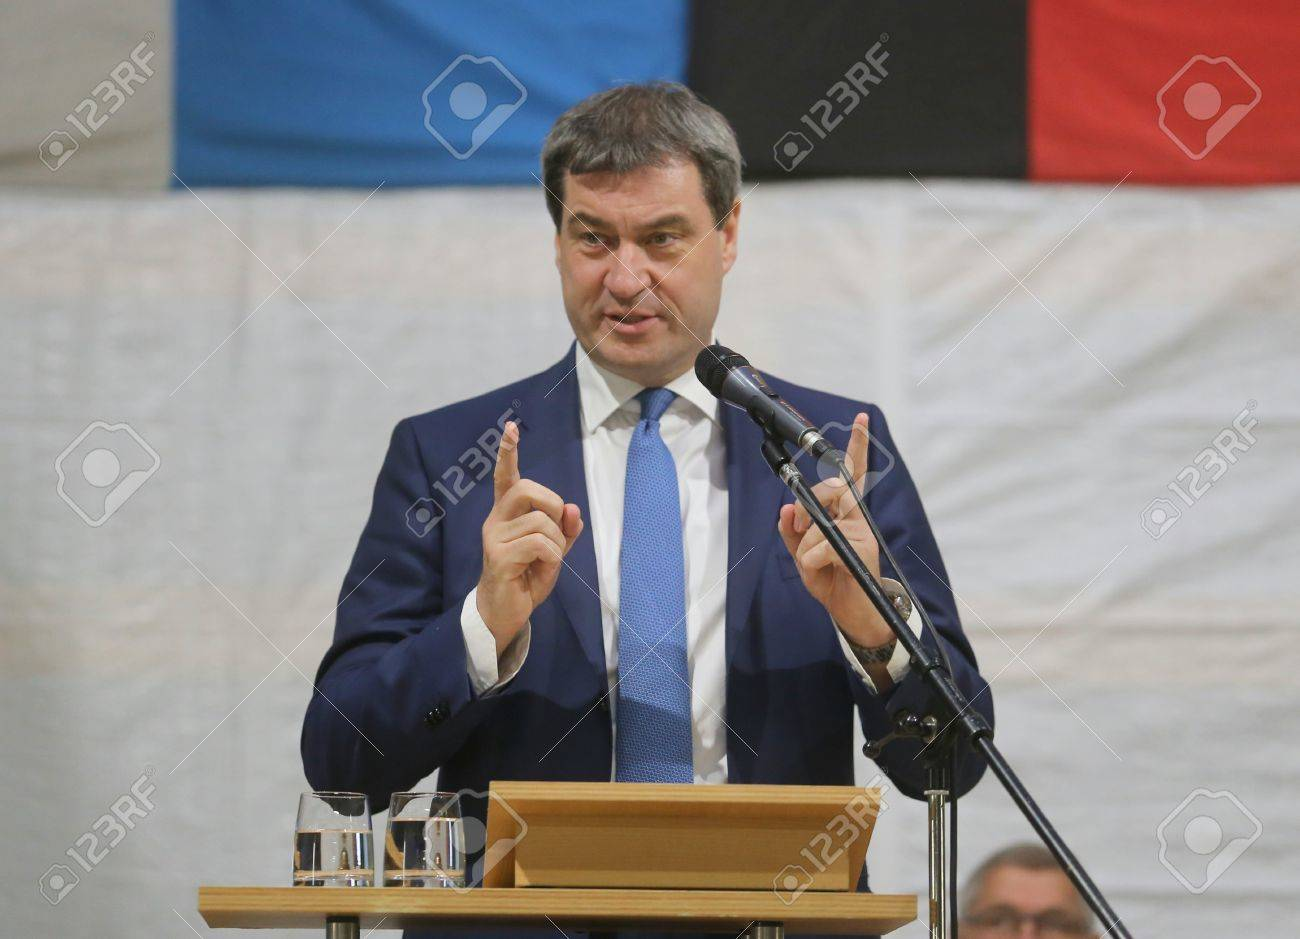 May 15, 2017 - Munich, Germany - Markus Soeder, CSU, Bavarian Minister of State for Finance, for Country Development and Home at a topping-out ceremony of a government building Standard-Bild - 86160244